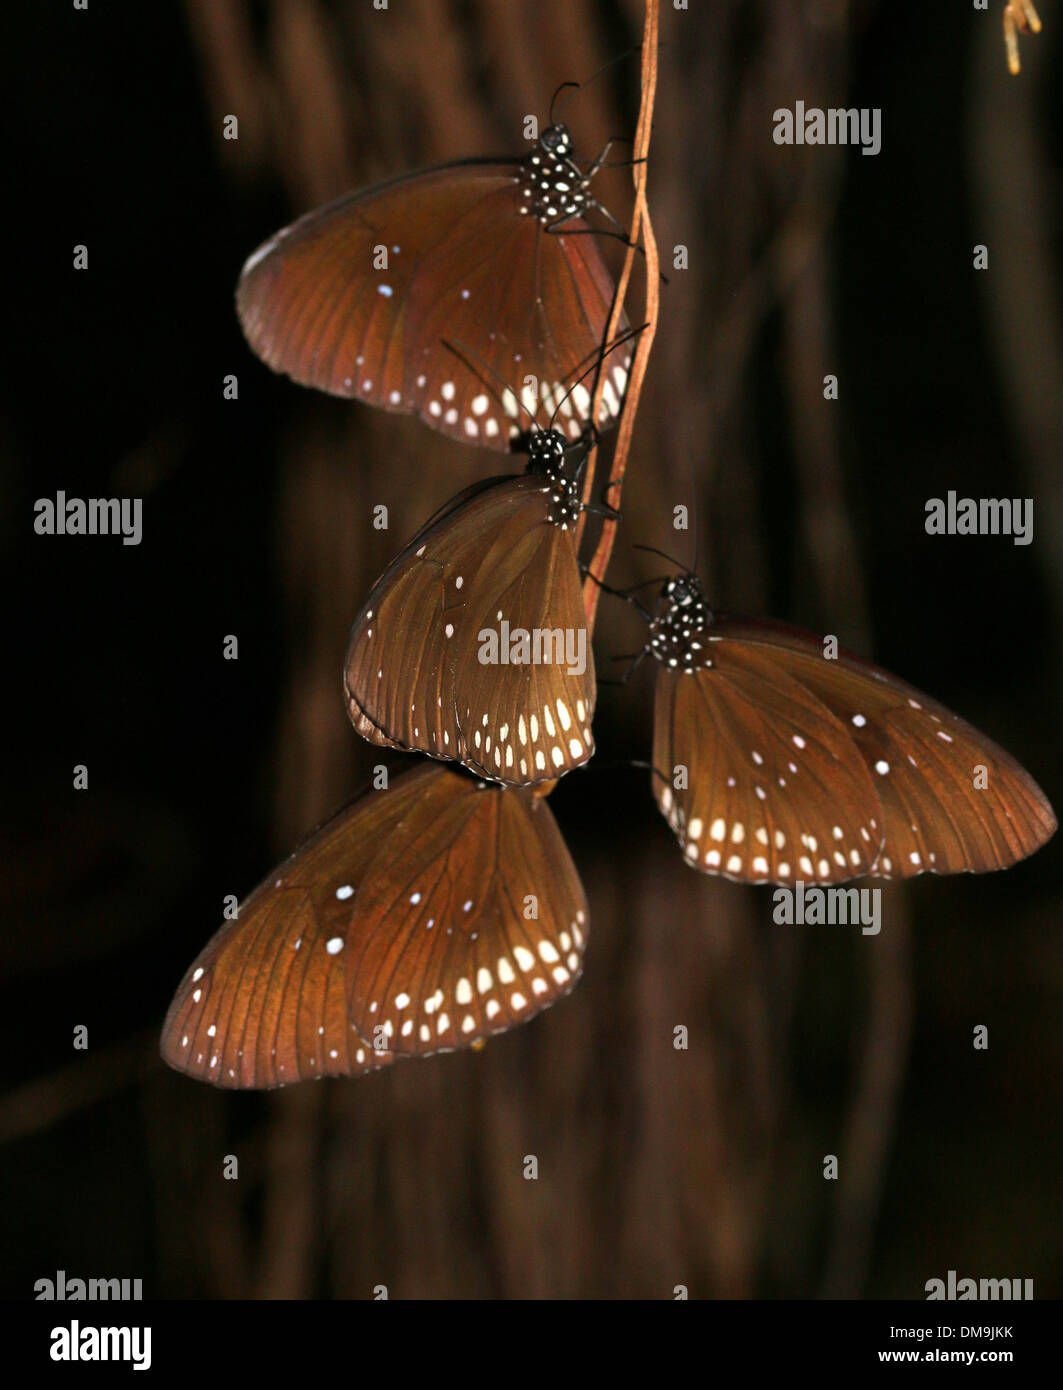 Group of four Common Crow butterflies (Euploea core) sleeping and resting at night - Stock Image